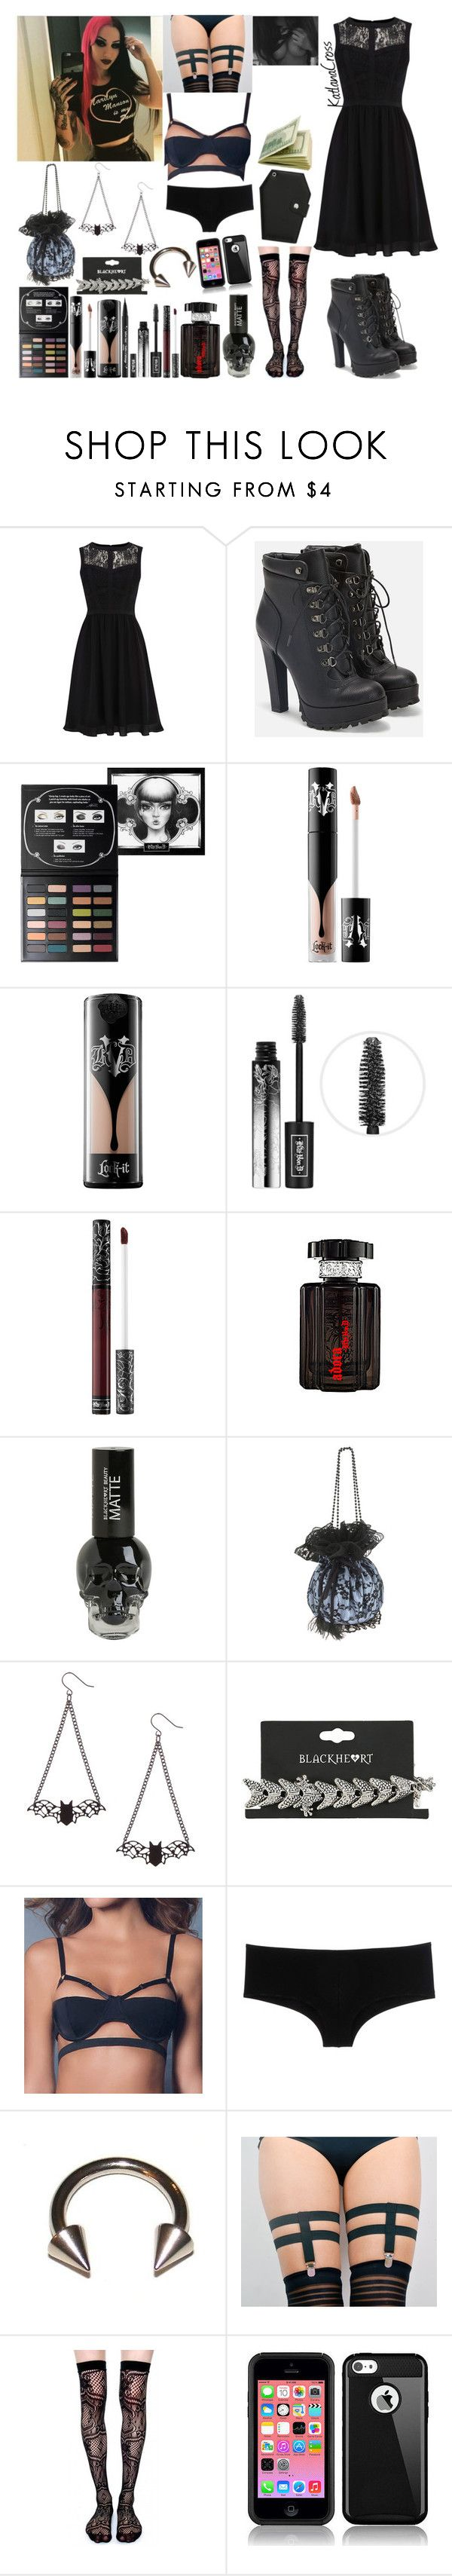 """""""Date night with Ash Costello"""" by katlanacross ❤ liked on Polyvore featuring Warehouse, JustFab, Kat Von D, Oh La La Cheri, D&G, Lip Service, DateNight and ashcostello"""